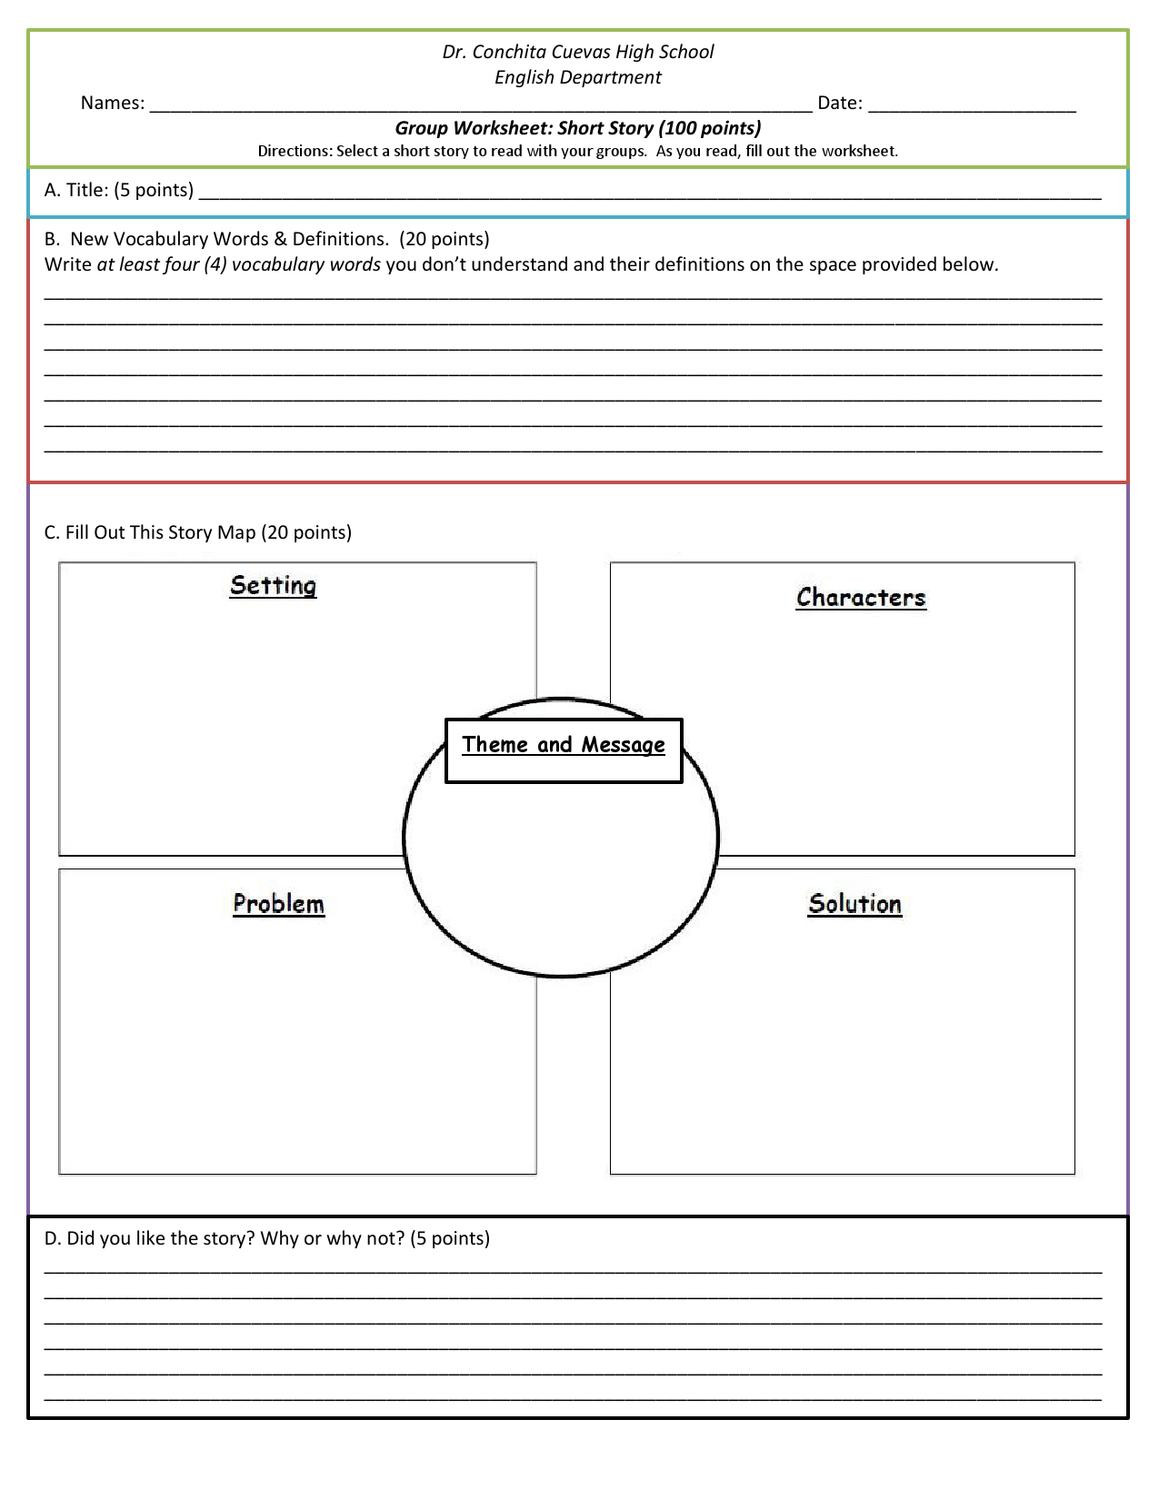 Character Analysis Worksheet High School Short Story Analysis Worksheet by Maria Jordan issuu